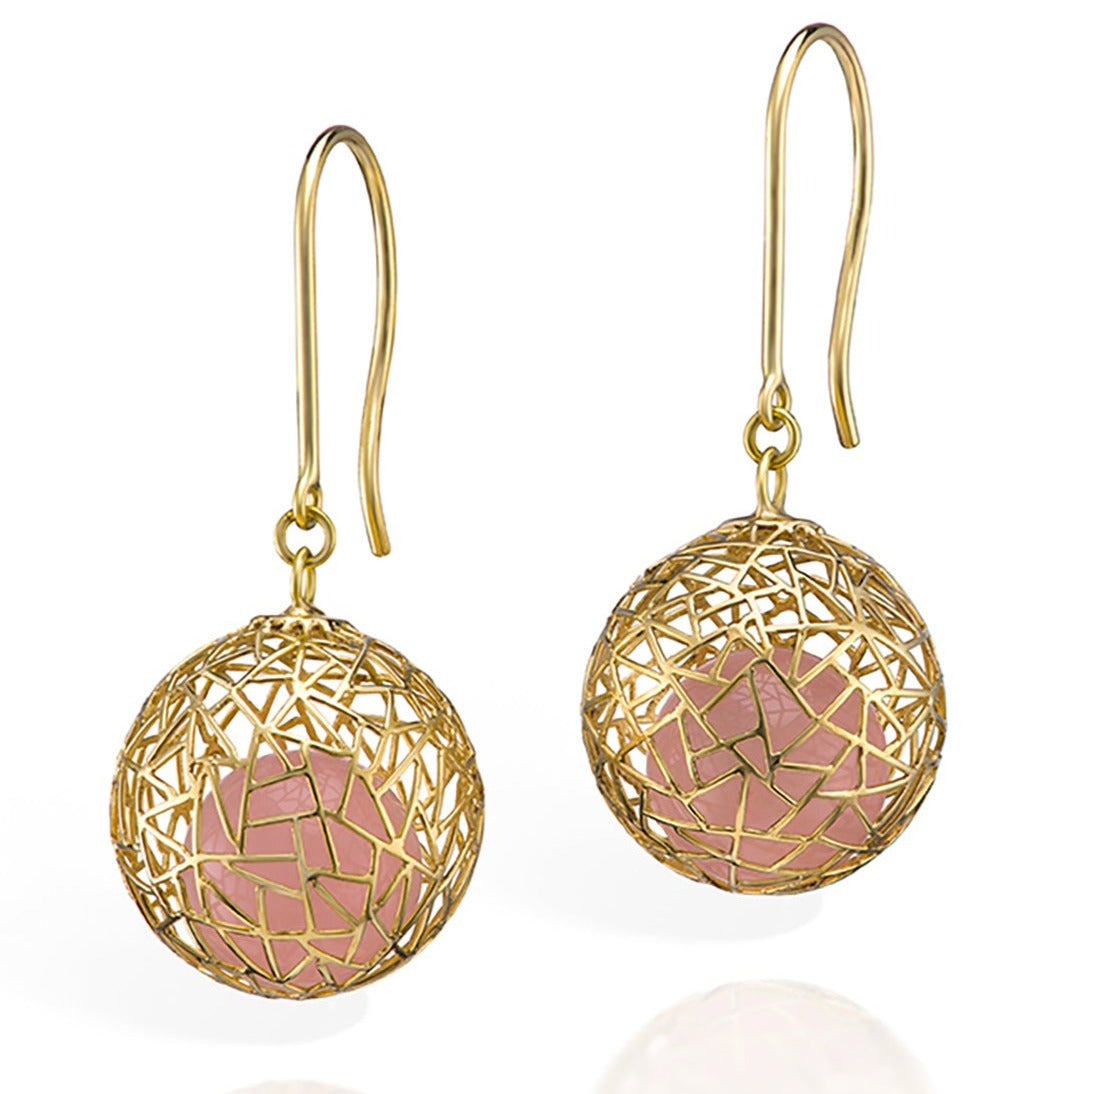 Gold Earrings with Rose Quartz